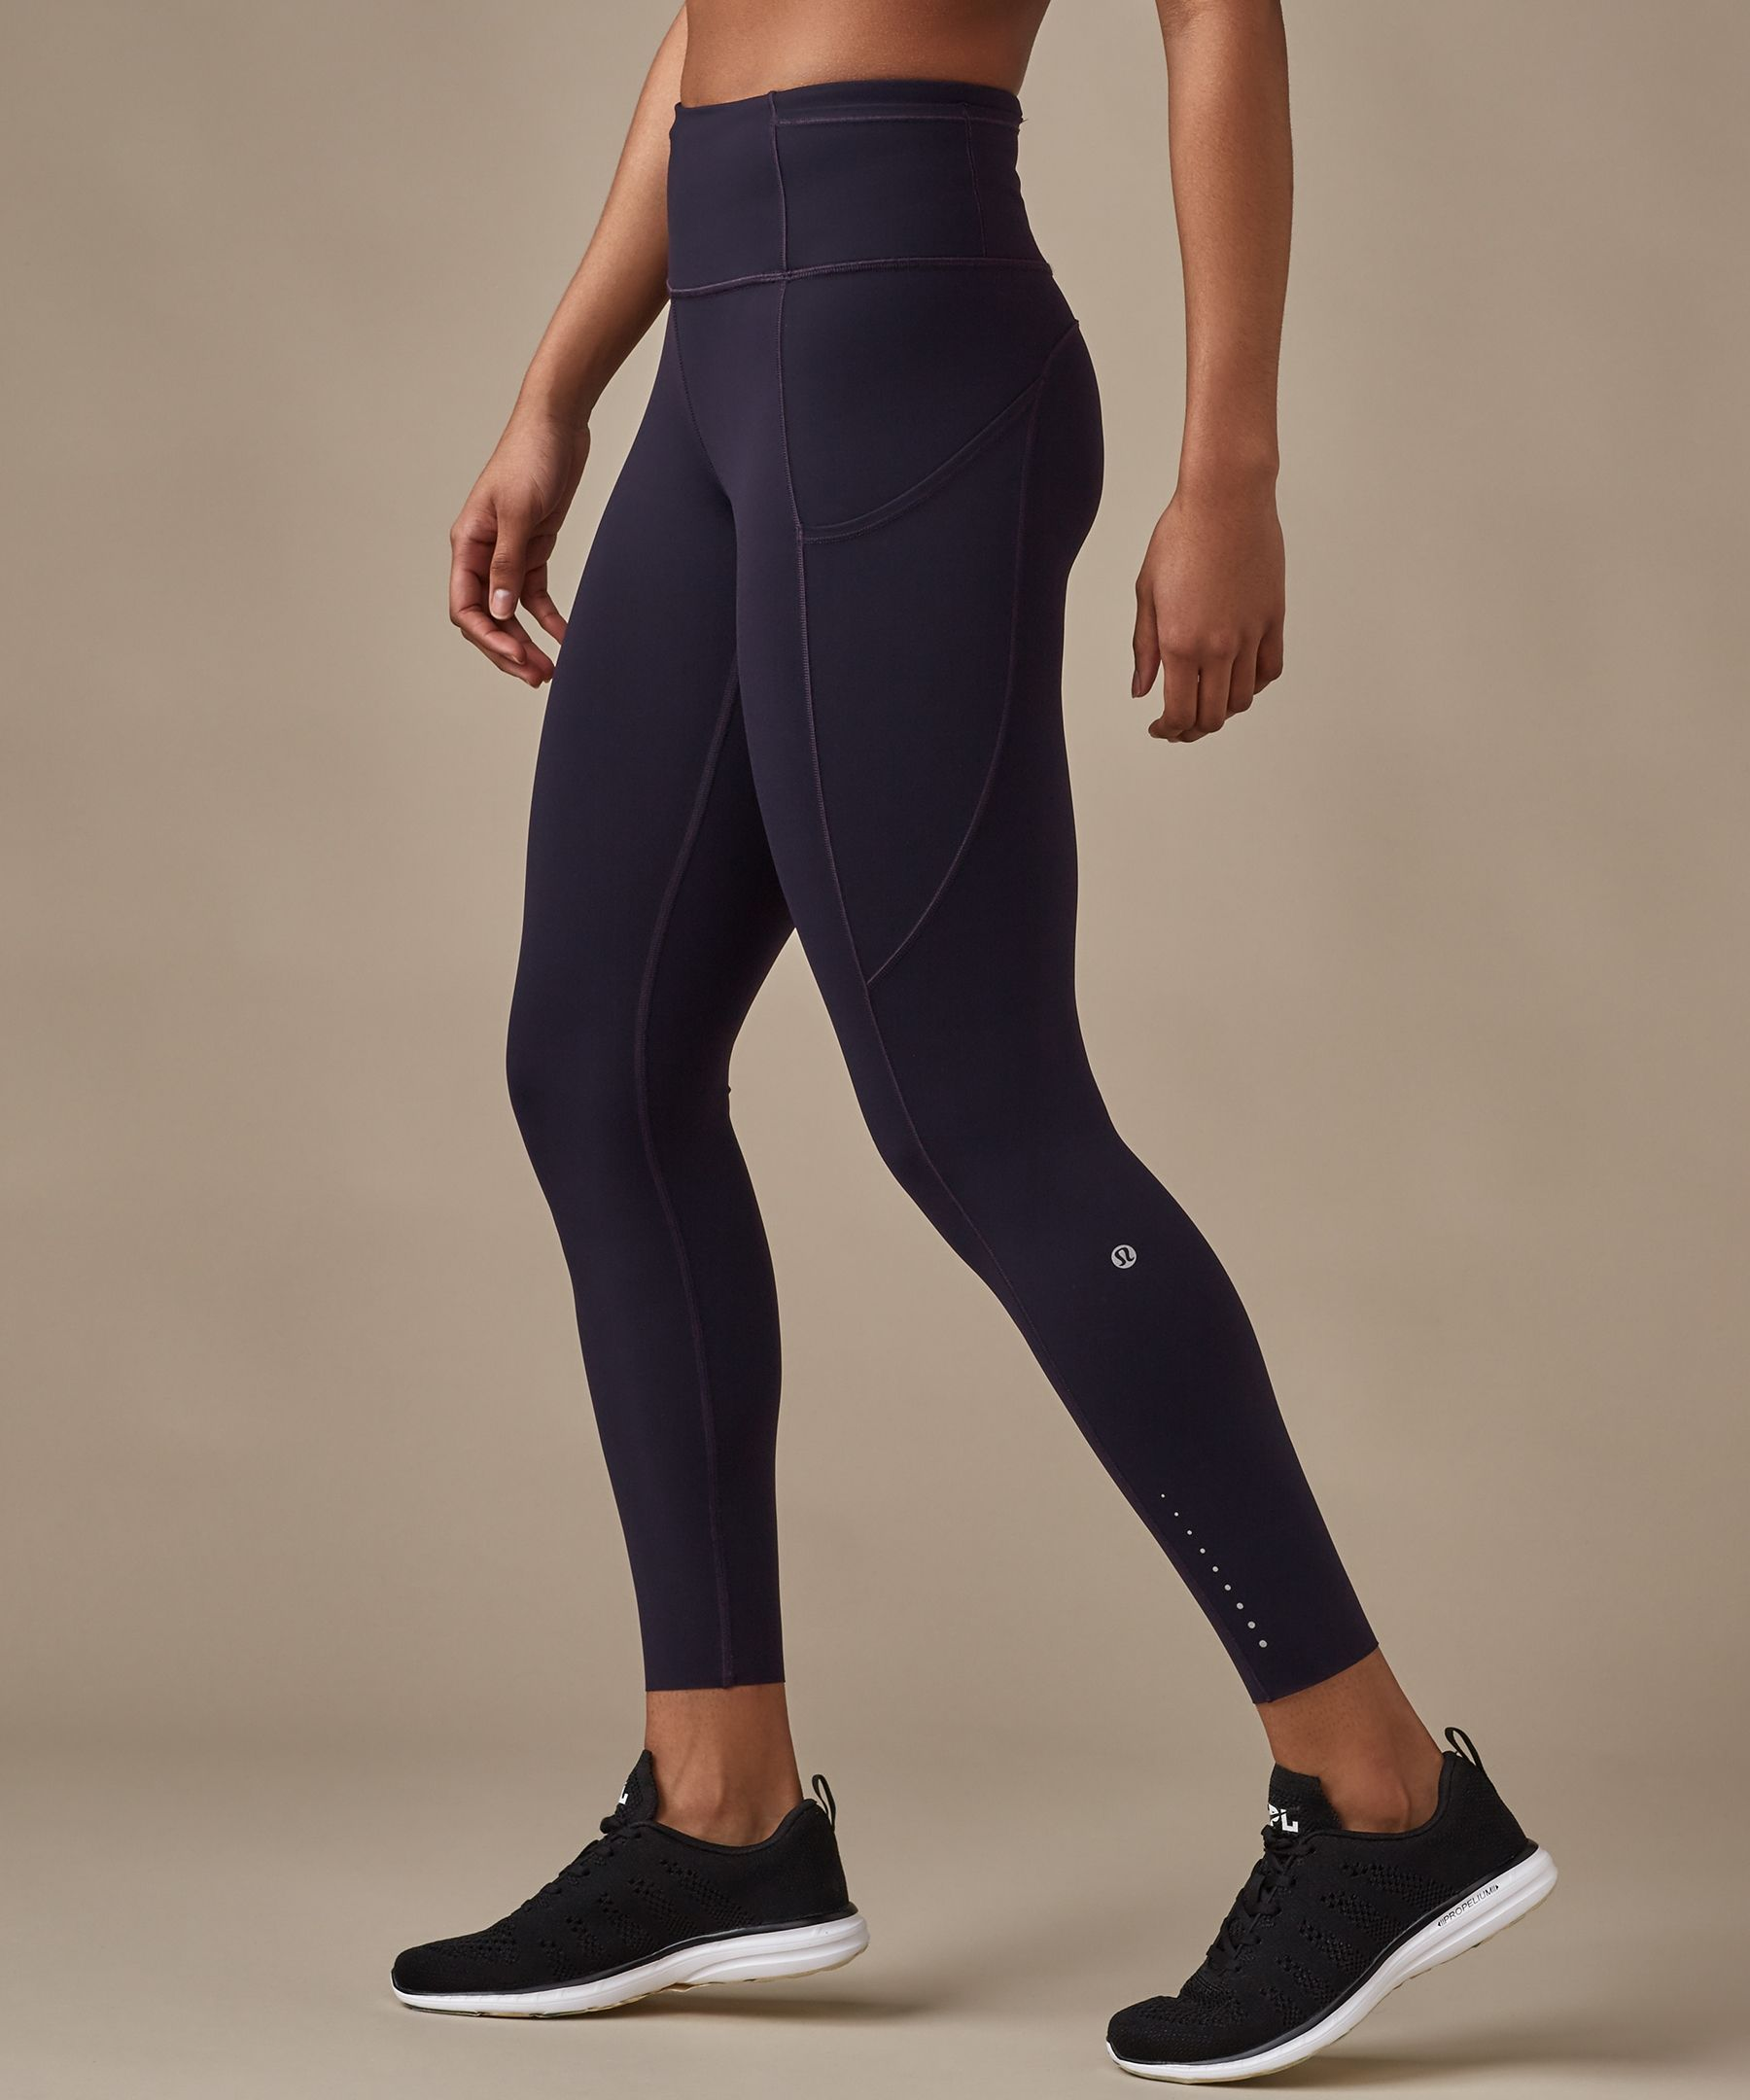 aa175c53b2250 Feel fast and free in these barely there, sweat-wicking run tights. An  interior waist drawcord ensures the perfect fit, while reflective details  keep you ...